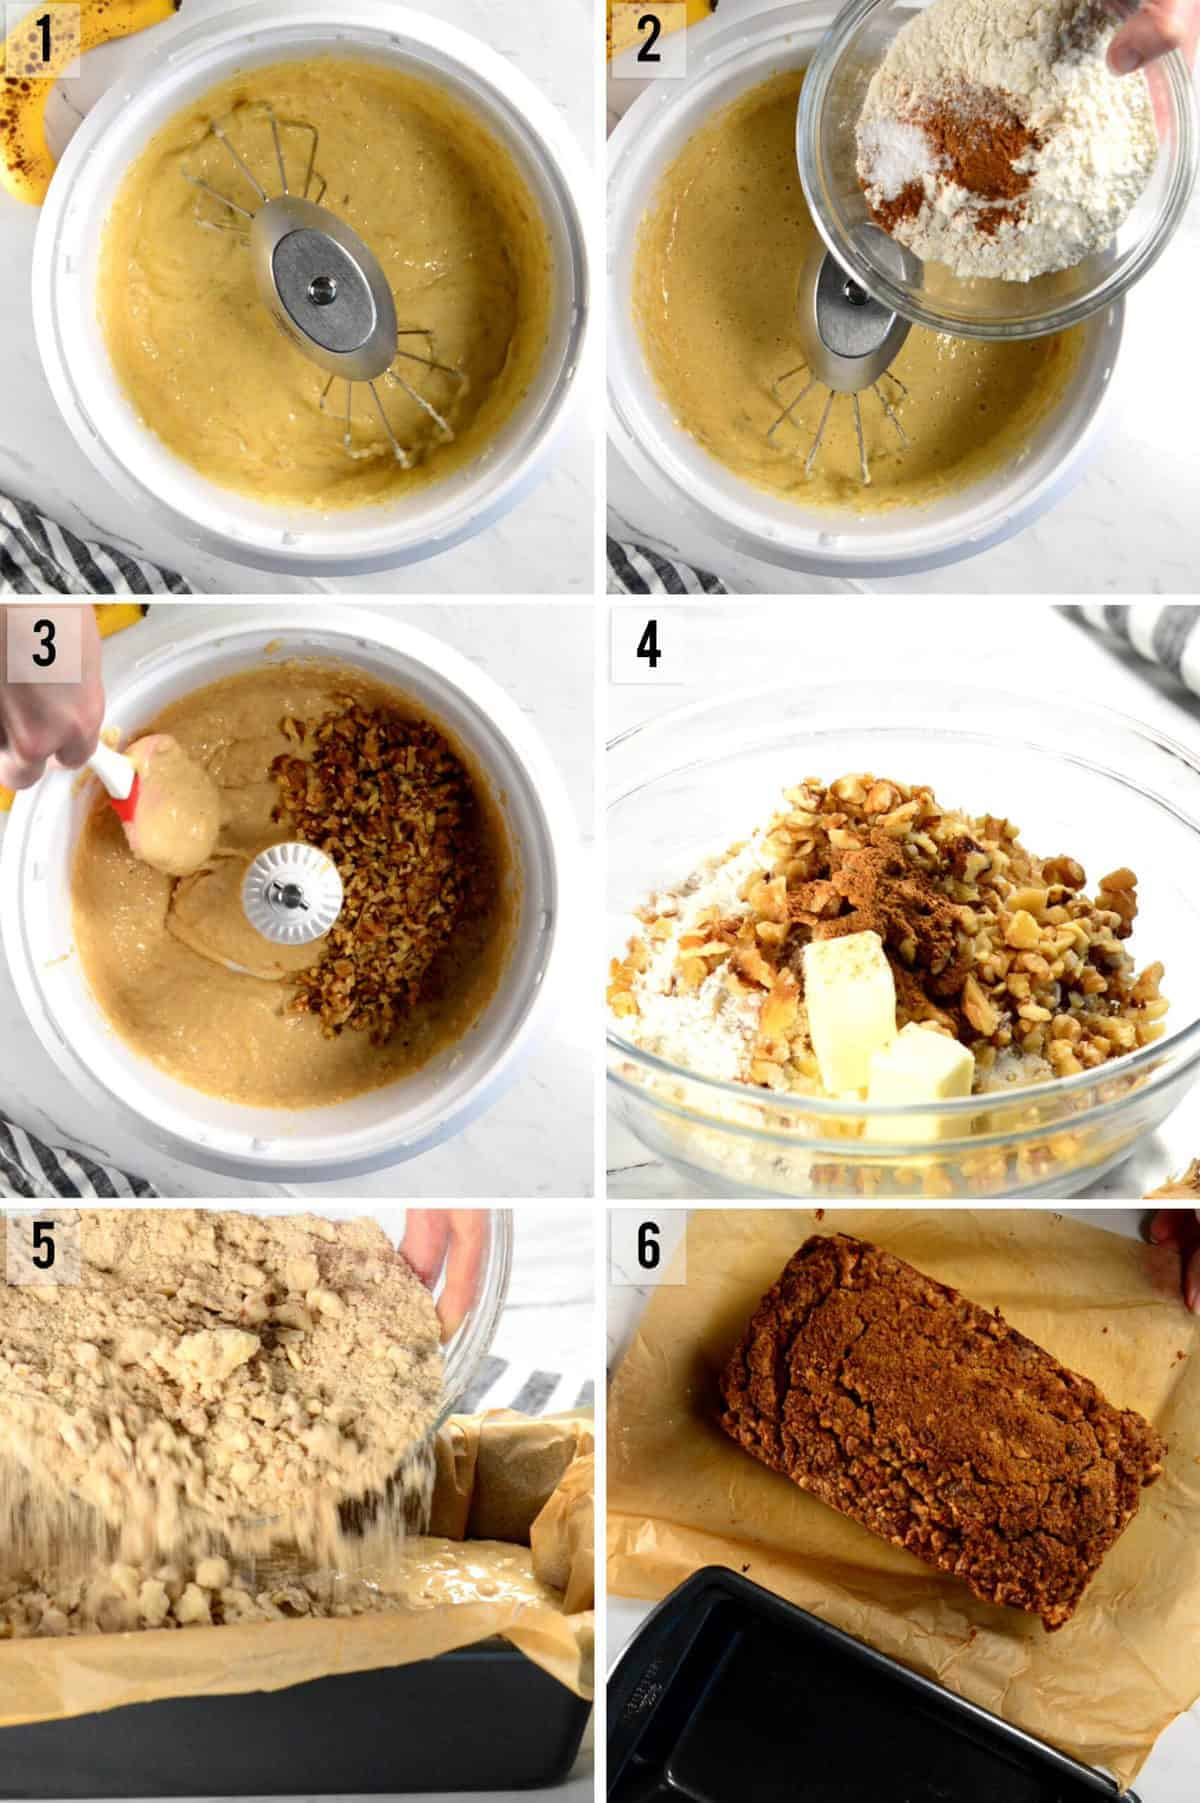 process photos of how to make Sour Cream Banana Nut Bread with streusel topping